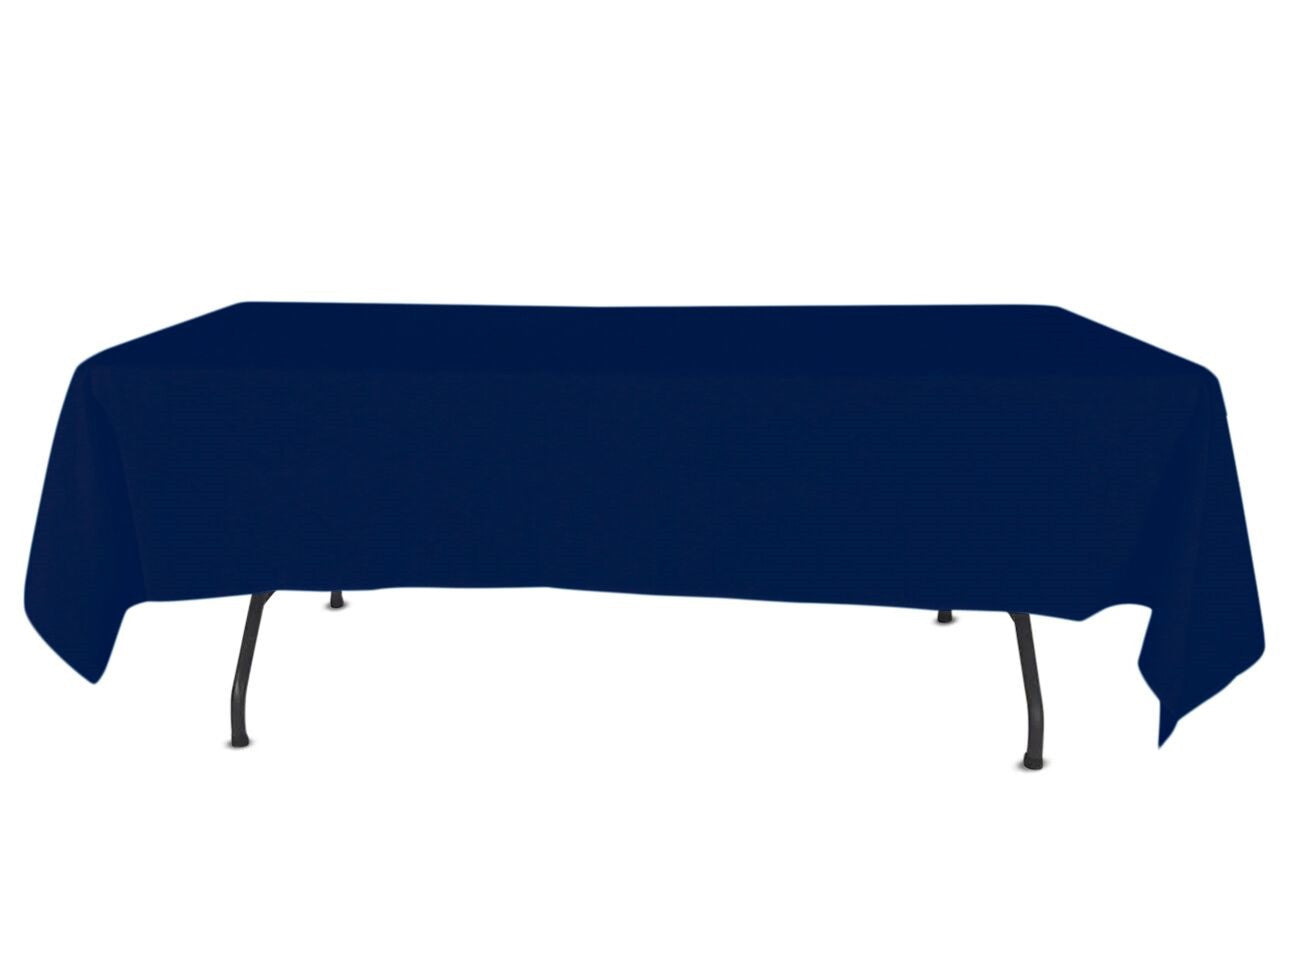 60 39 39 x 102 39 39 tablecloth valley tablecloths. Black Bedroom Furniture Sets. Home Design Ideas